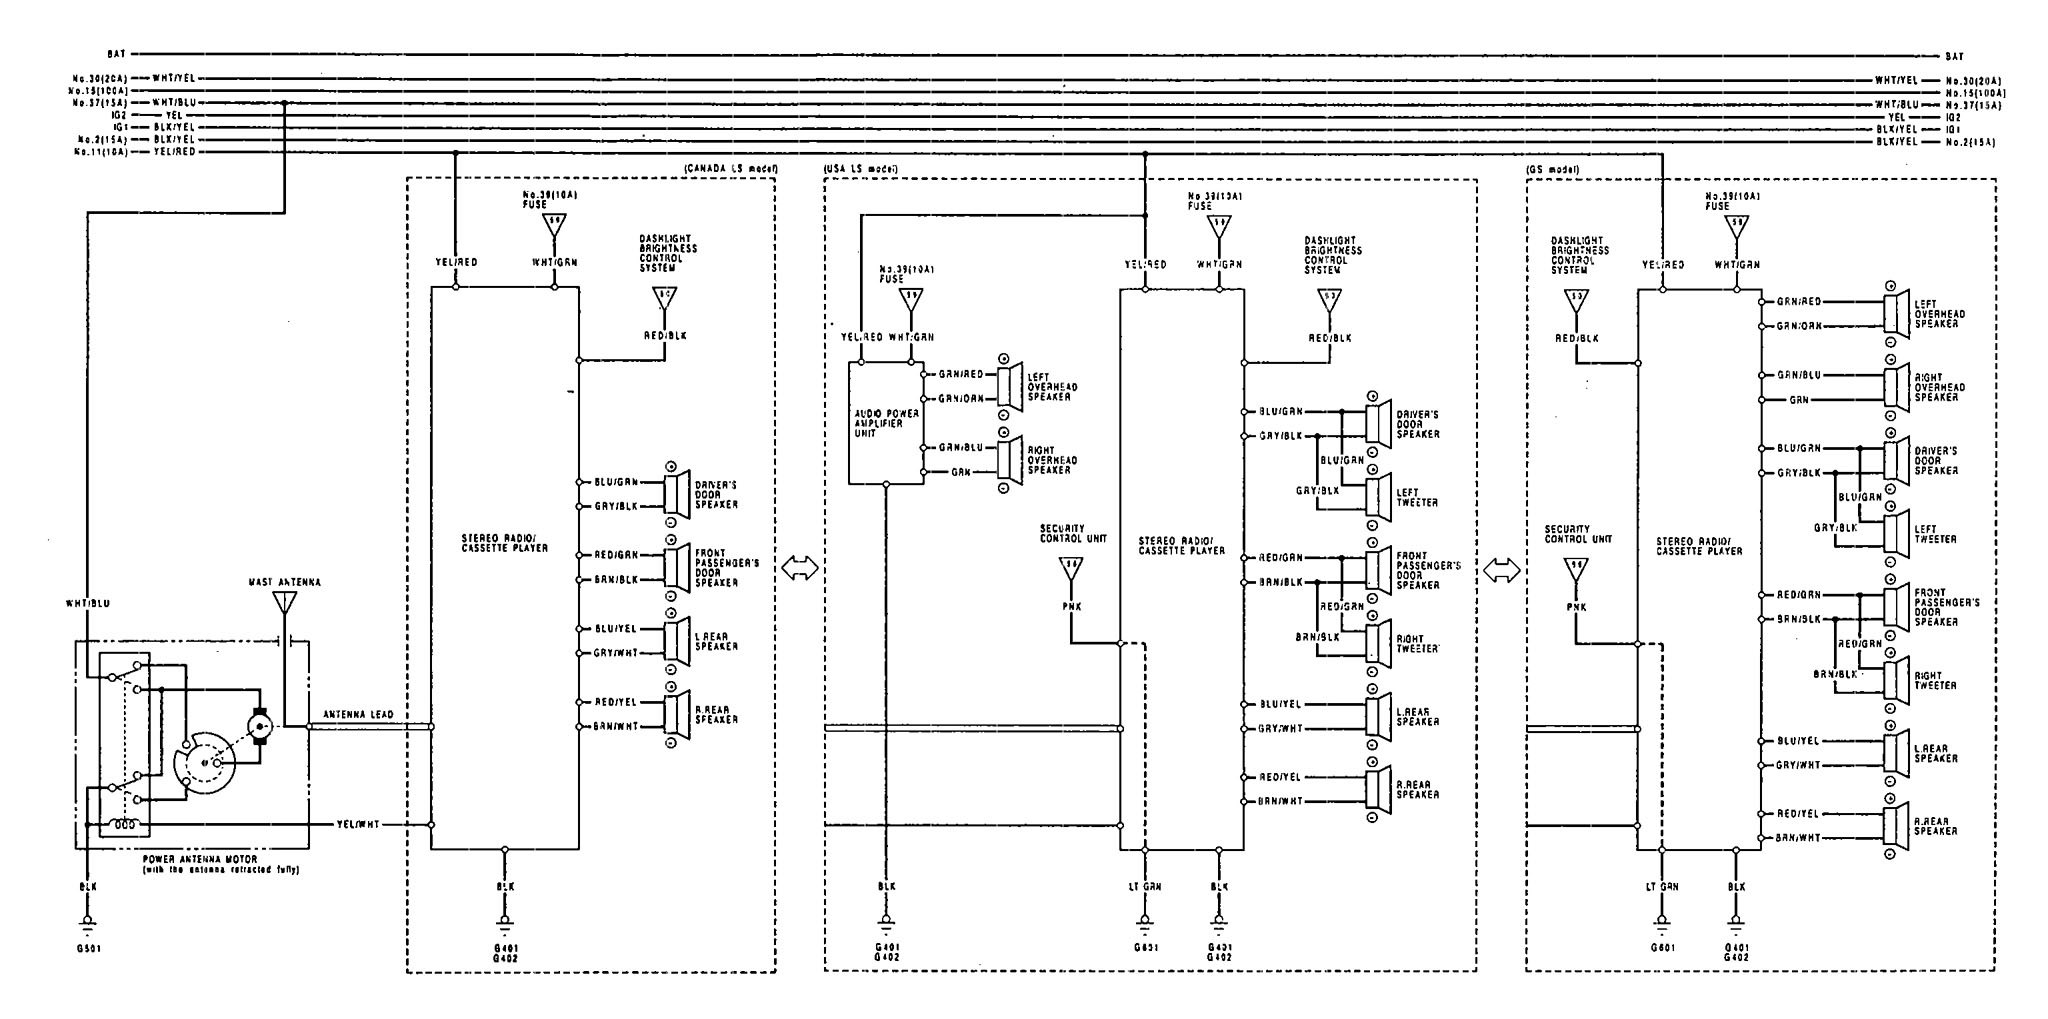 Eta Car Stereo Wiring Diagram 92 Acura Vigor Epub Download